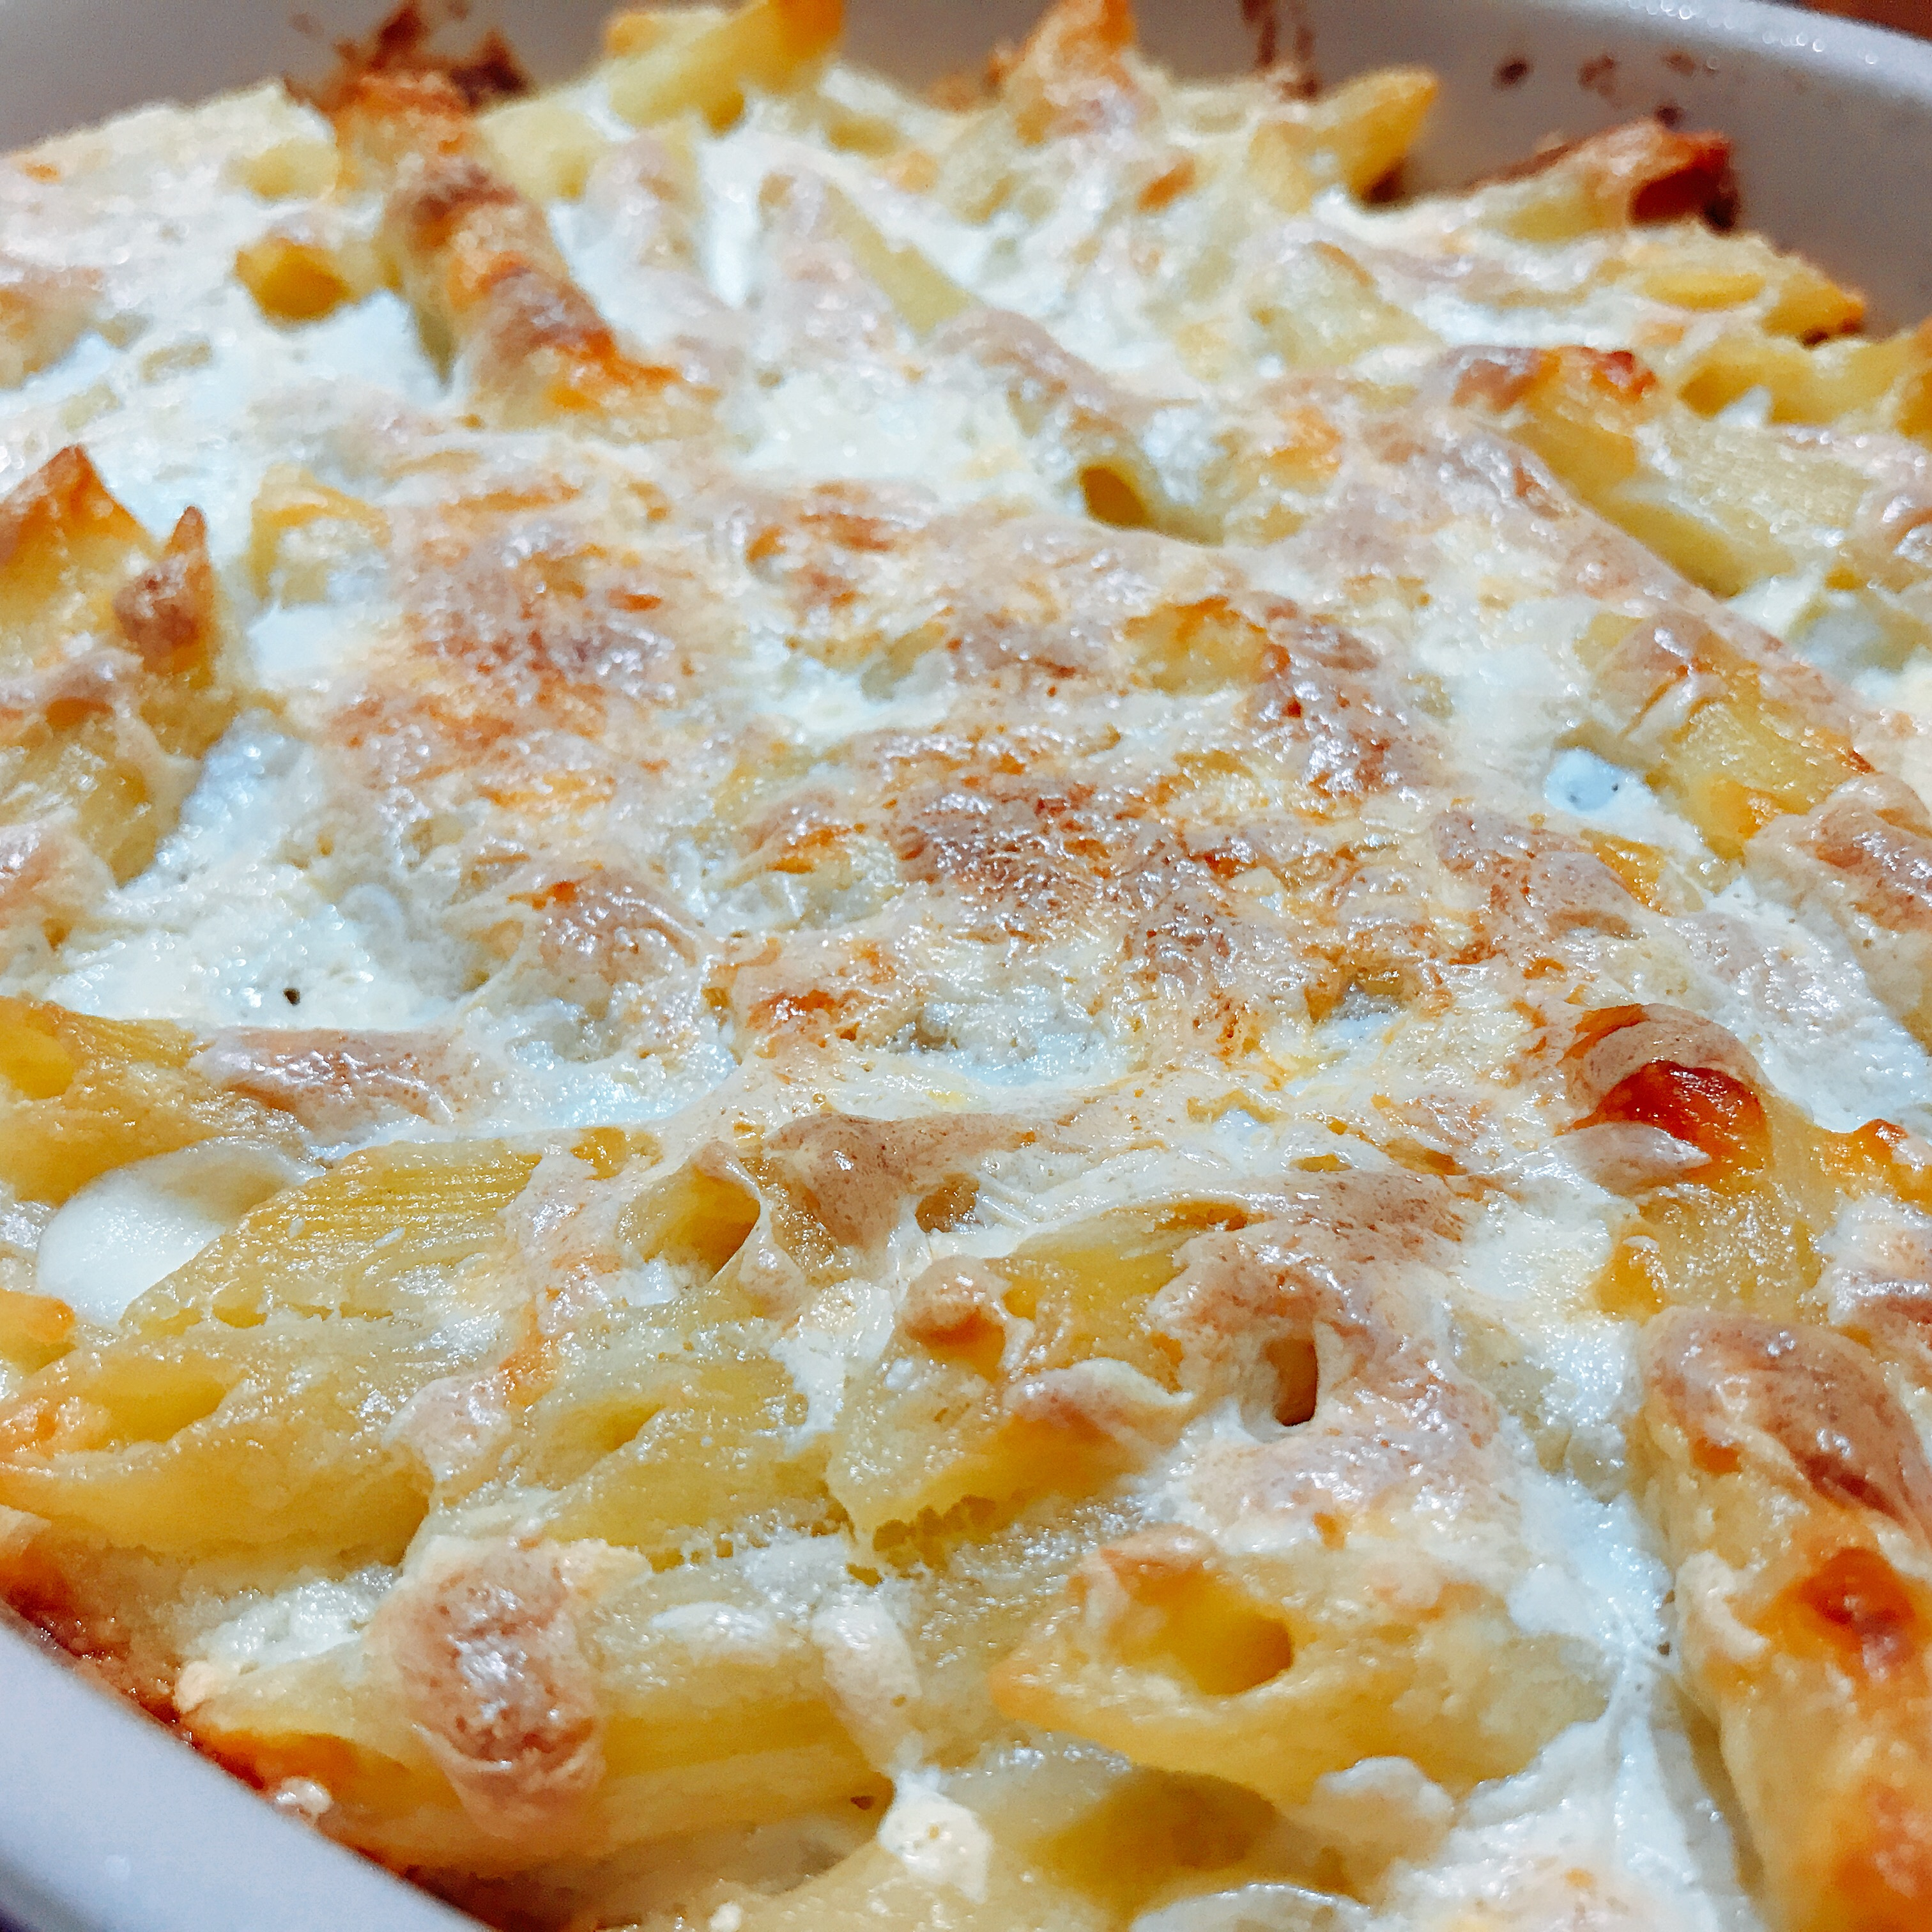 Decadent Baked Mac and Cheese